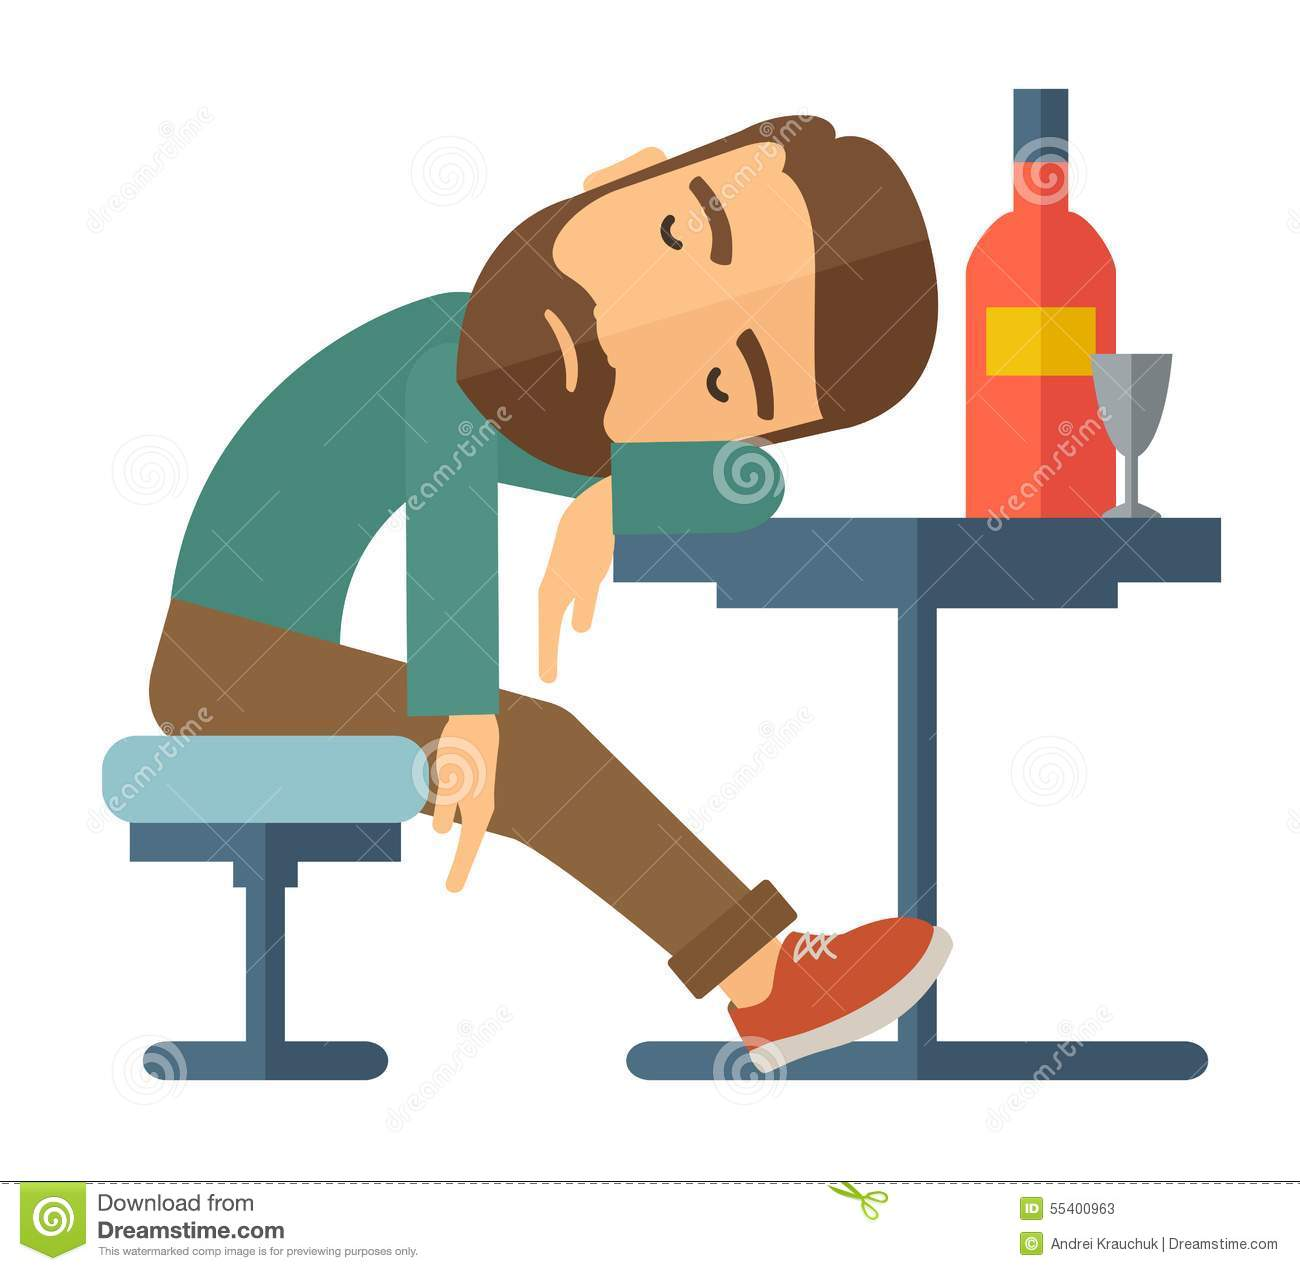 Stock Illustration Drunk Man Fall Asleep Pub Sitting Table Bottle Beer Inside Over Drink Concept Contemporary Style Vector Image55400963 on Nightclub Bar Design Floor Plans